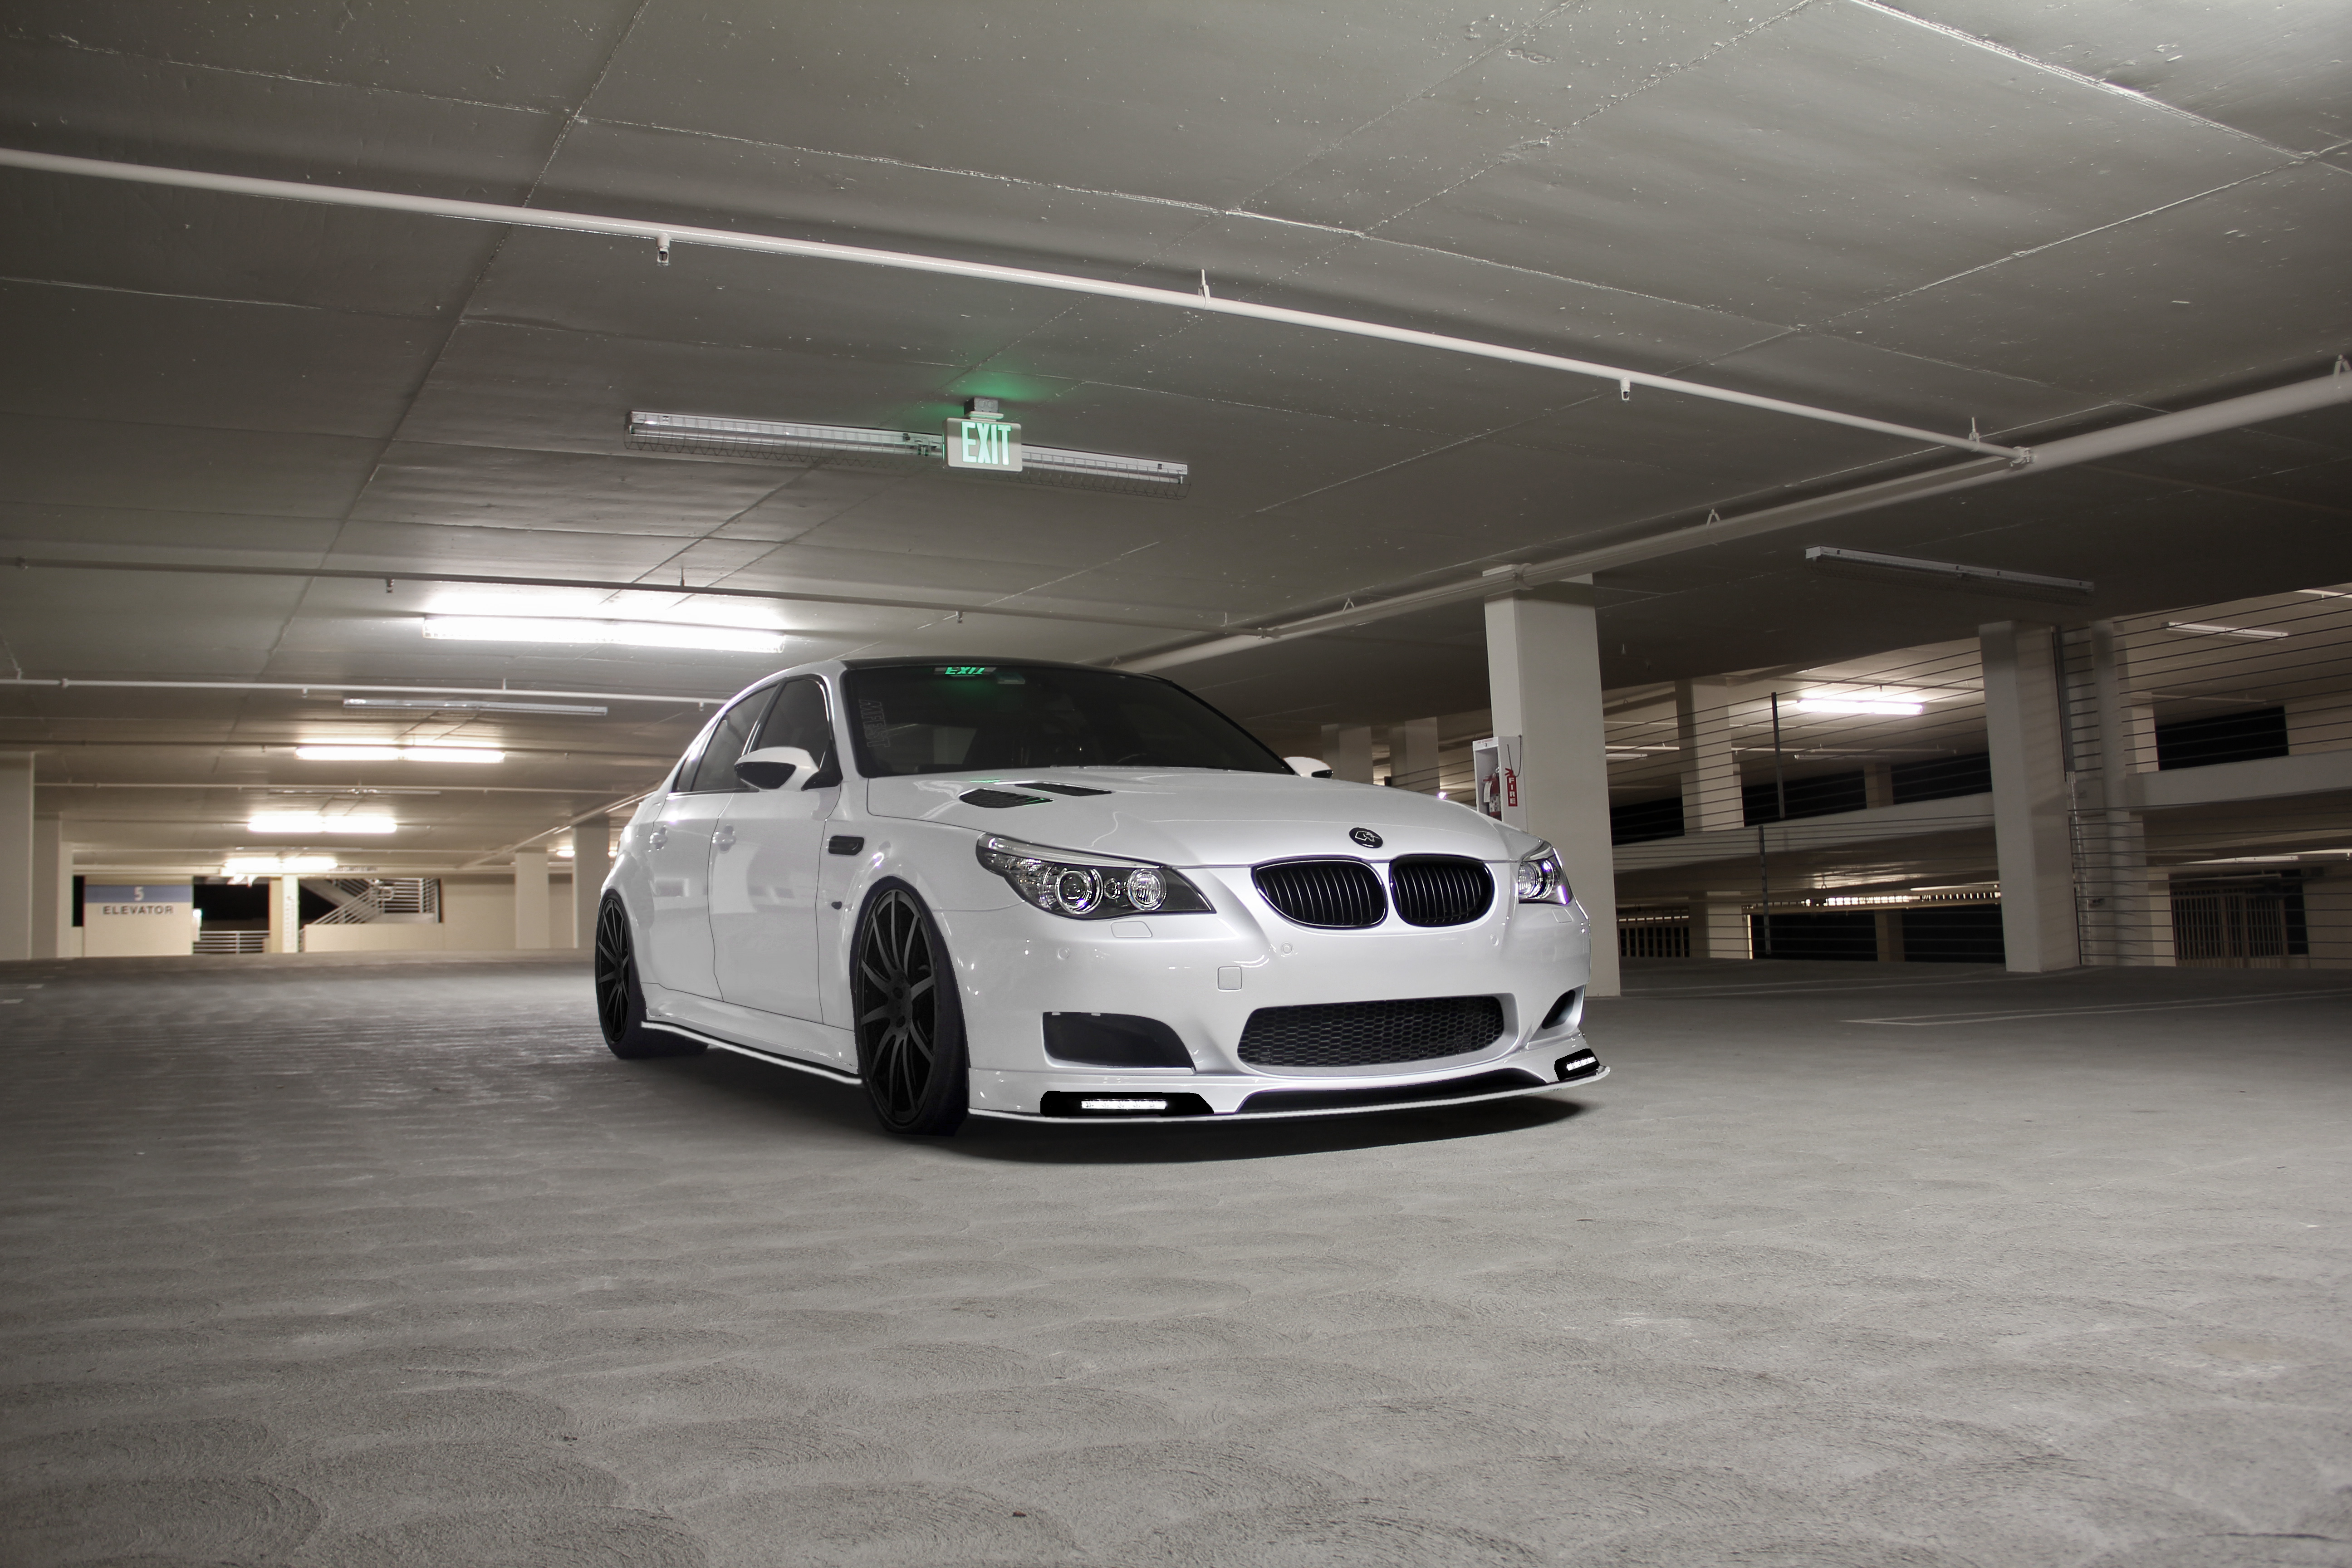 BMW M5 HD Wallpapers Images Backgrounds 5184x3456